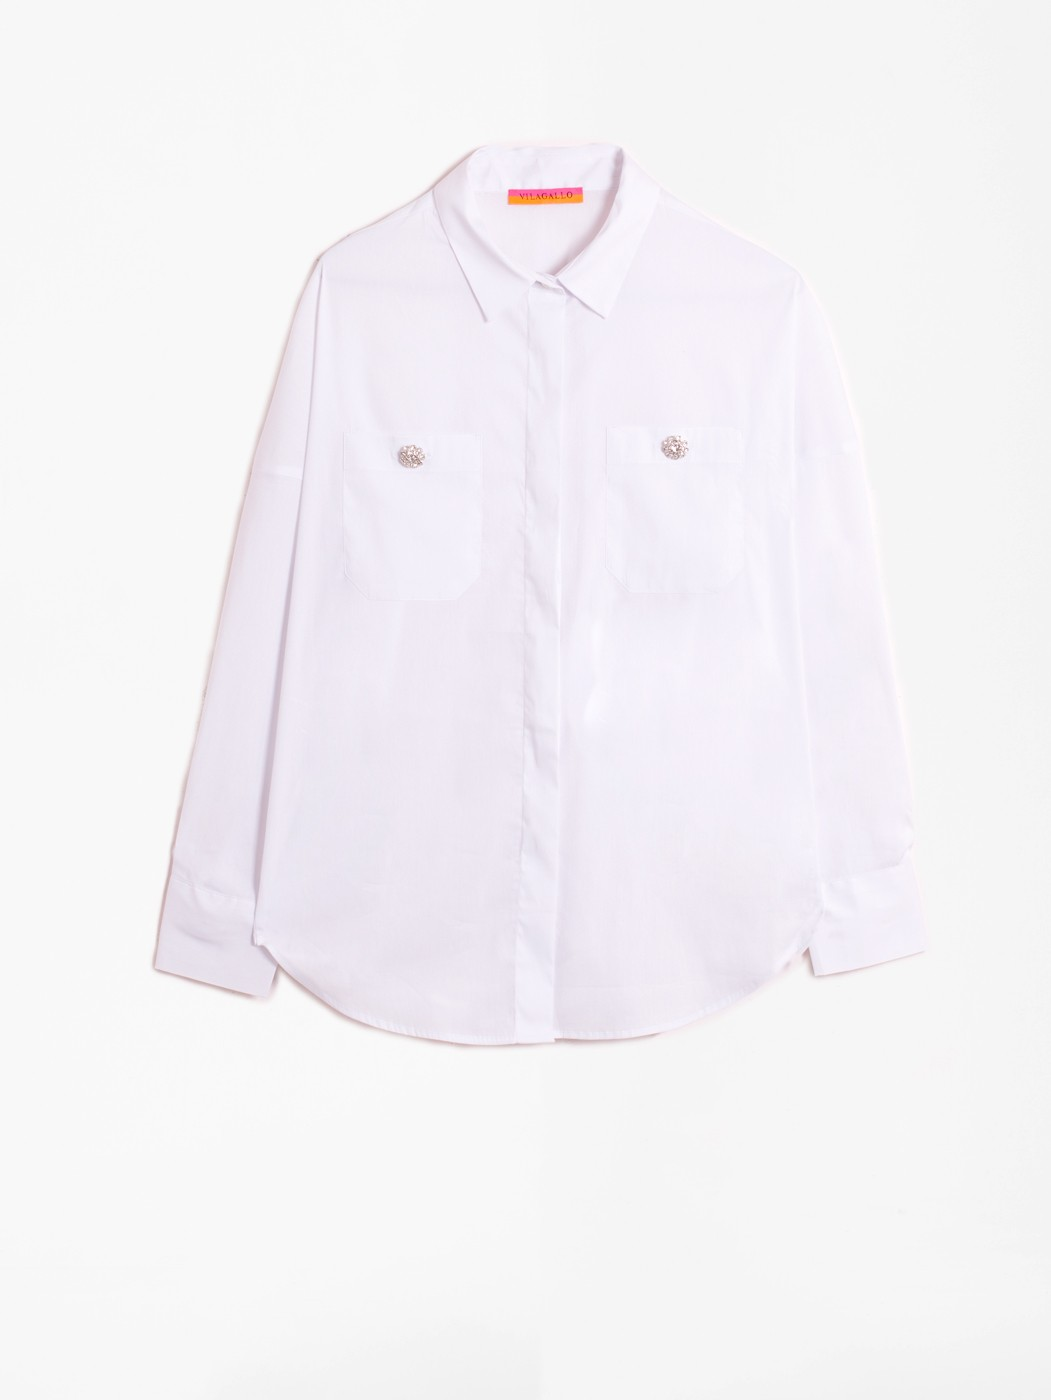 TELMA CONFORT WHITE SHIRT